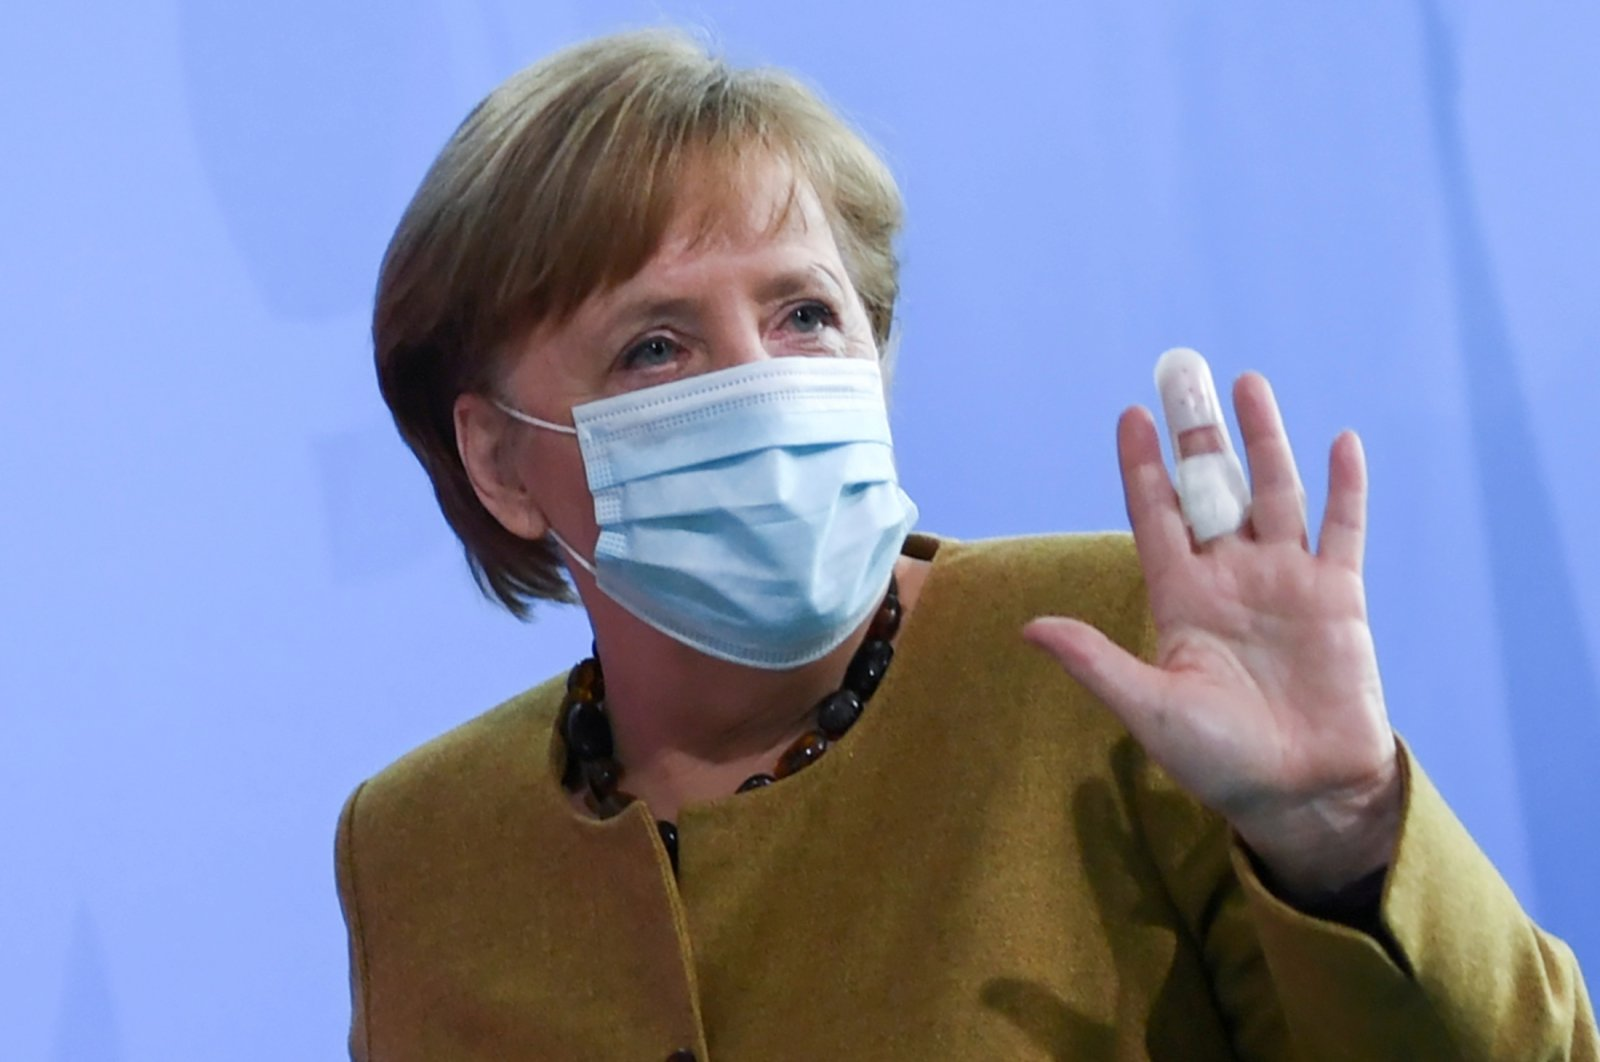 German Chancellor Angela Merkel gestures with a bandaged finger as she leaves after giving a statement, amid the coronavirus pandemic, Berlin, Germany, April 13, 2021. (Reuters Photo)